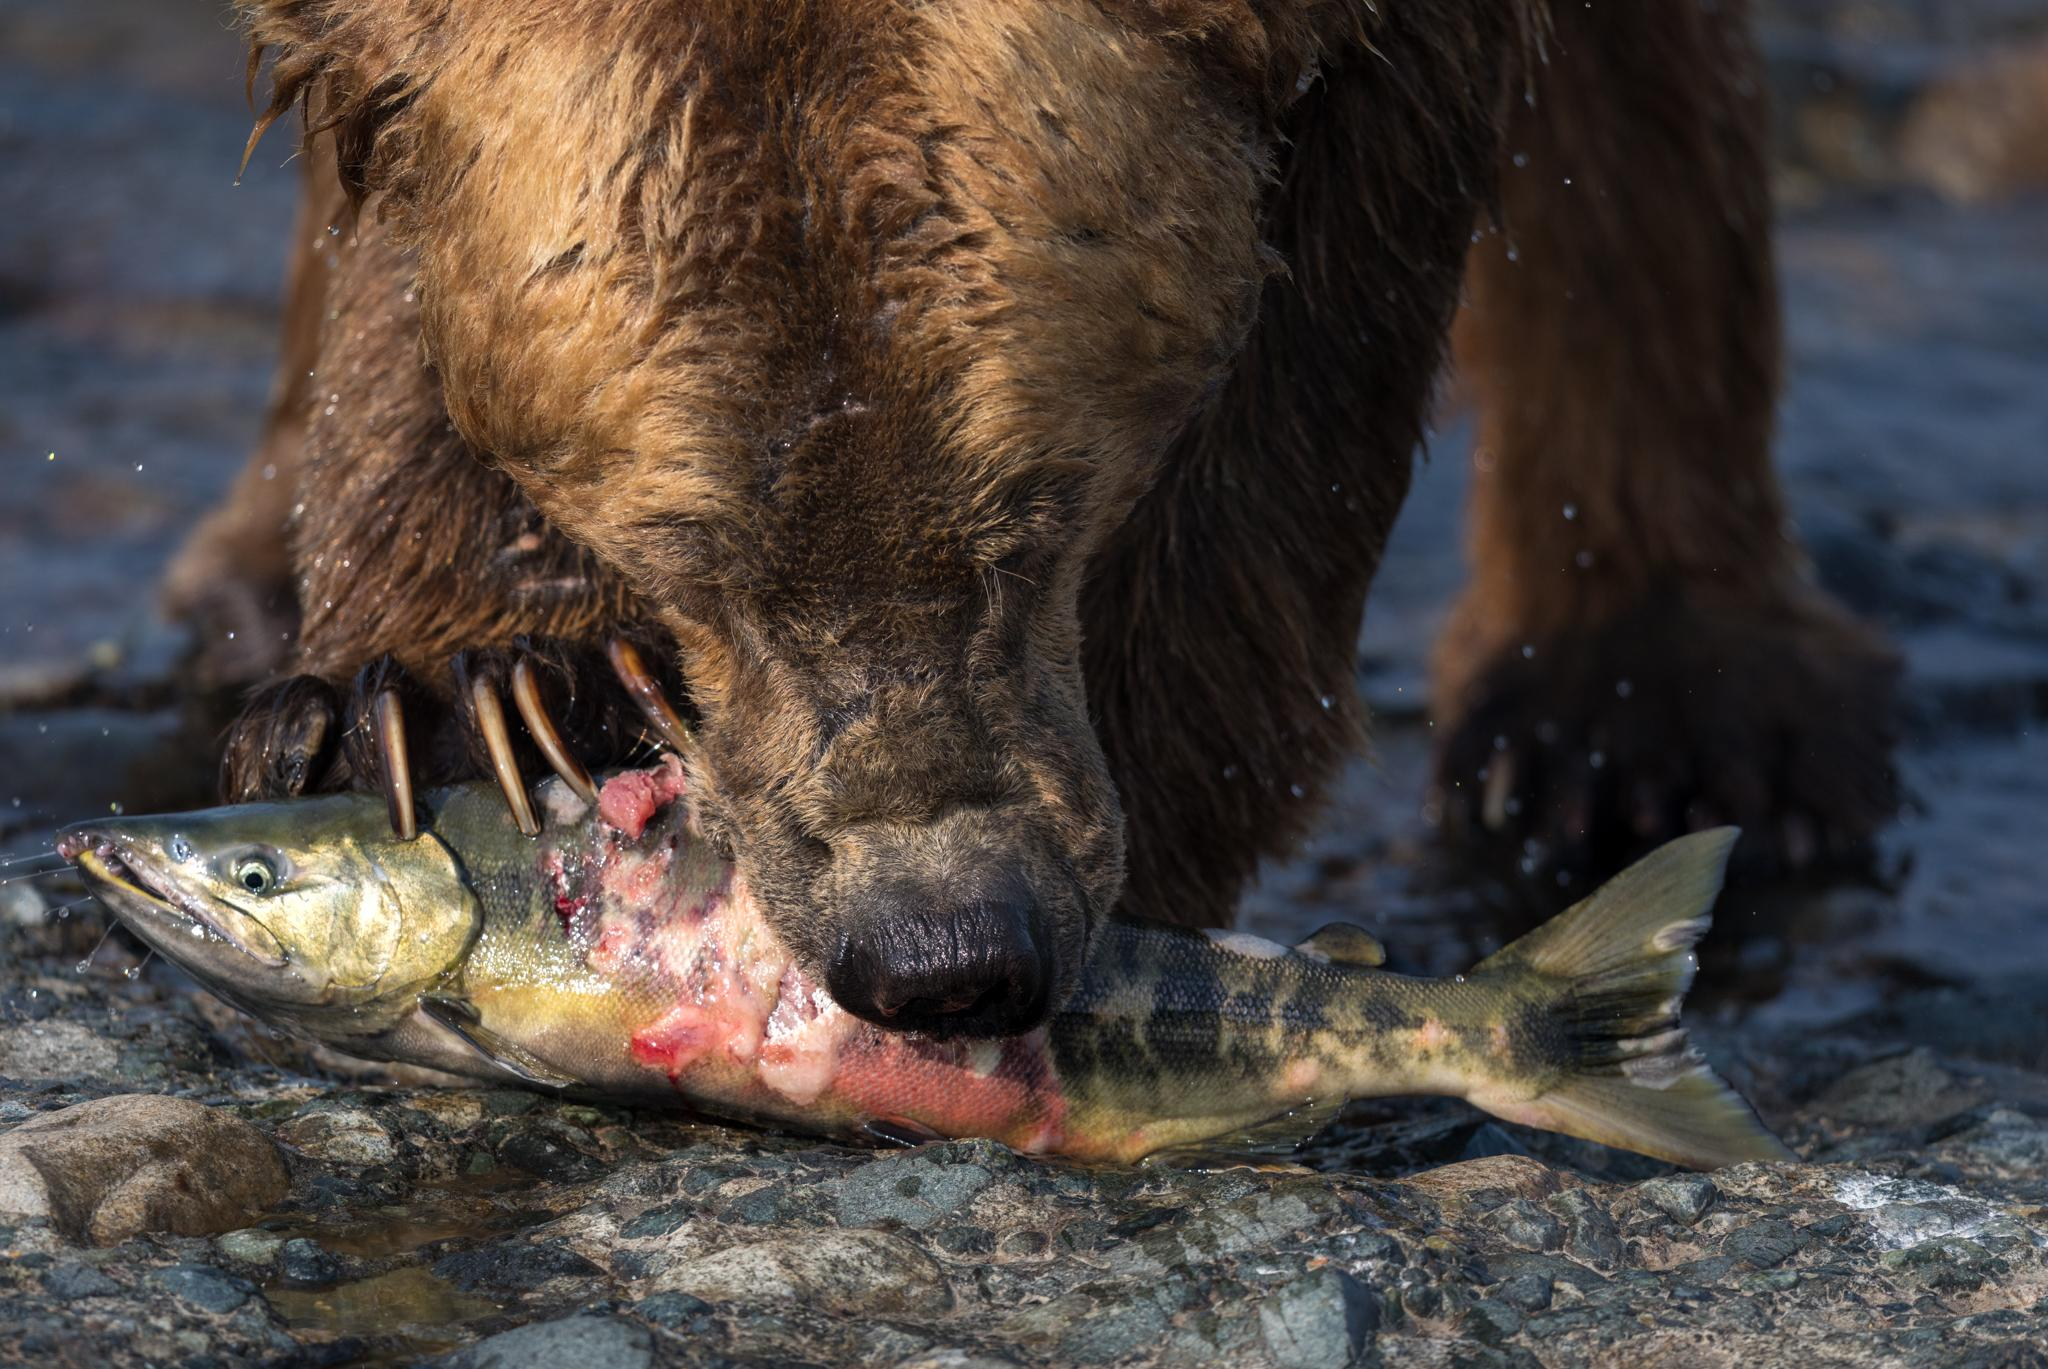 A brown bear eats a salmon at McNeil Falls. The establishment of a successful bear-viewing camp here has challenged the belief that brown bears are always dangerous to humans.